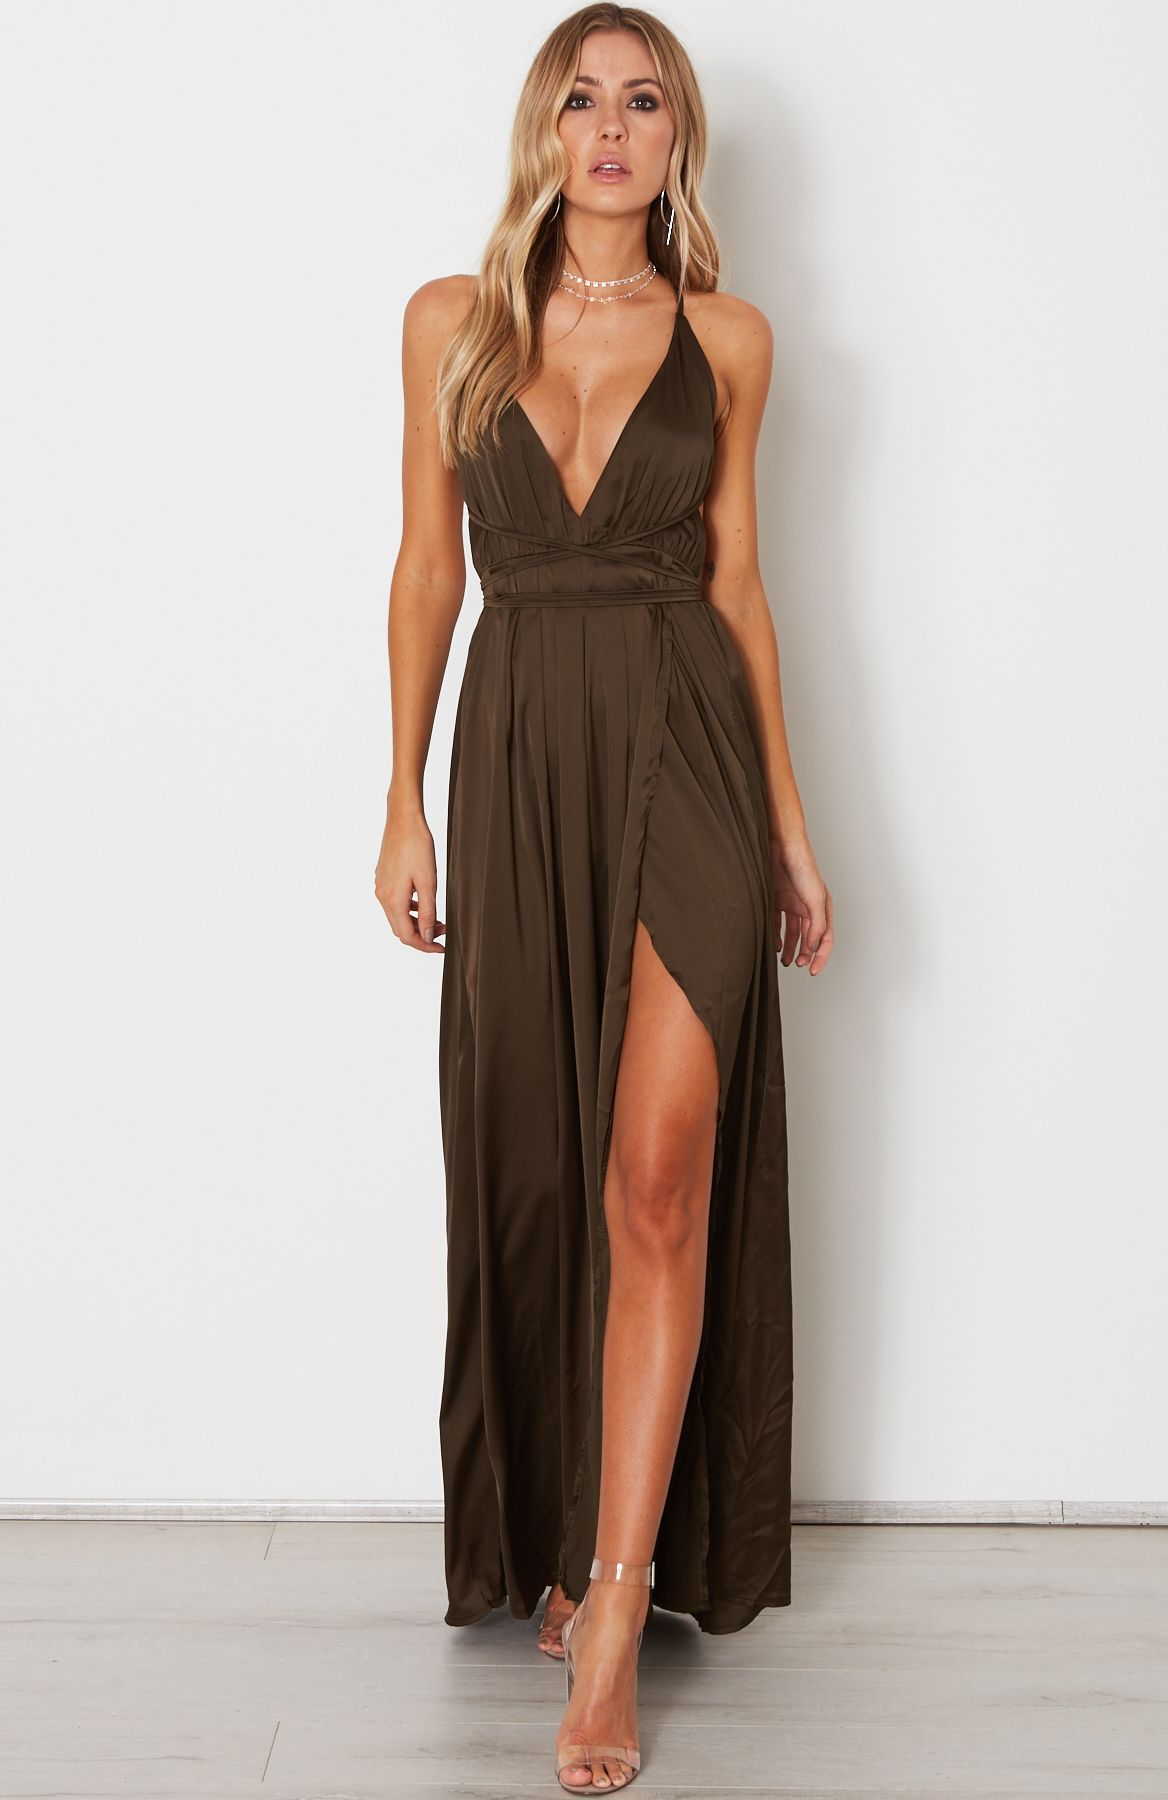 fdc772914d74b Akela Maxi Dress Khaki | Dresses - White Fox | Open back maxi dress ...